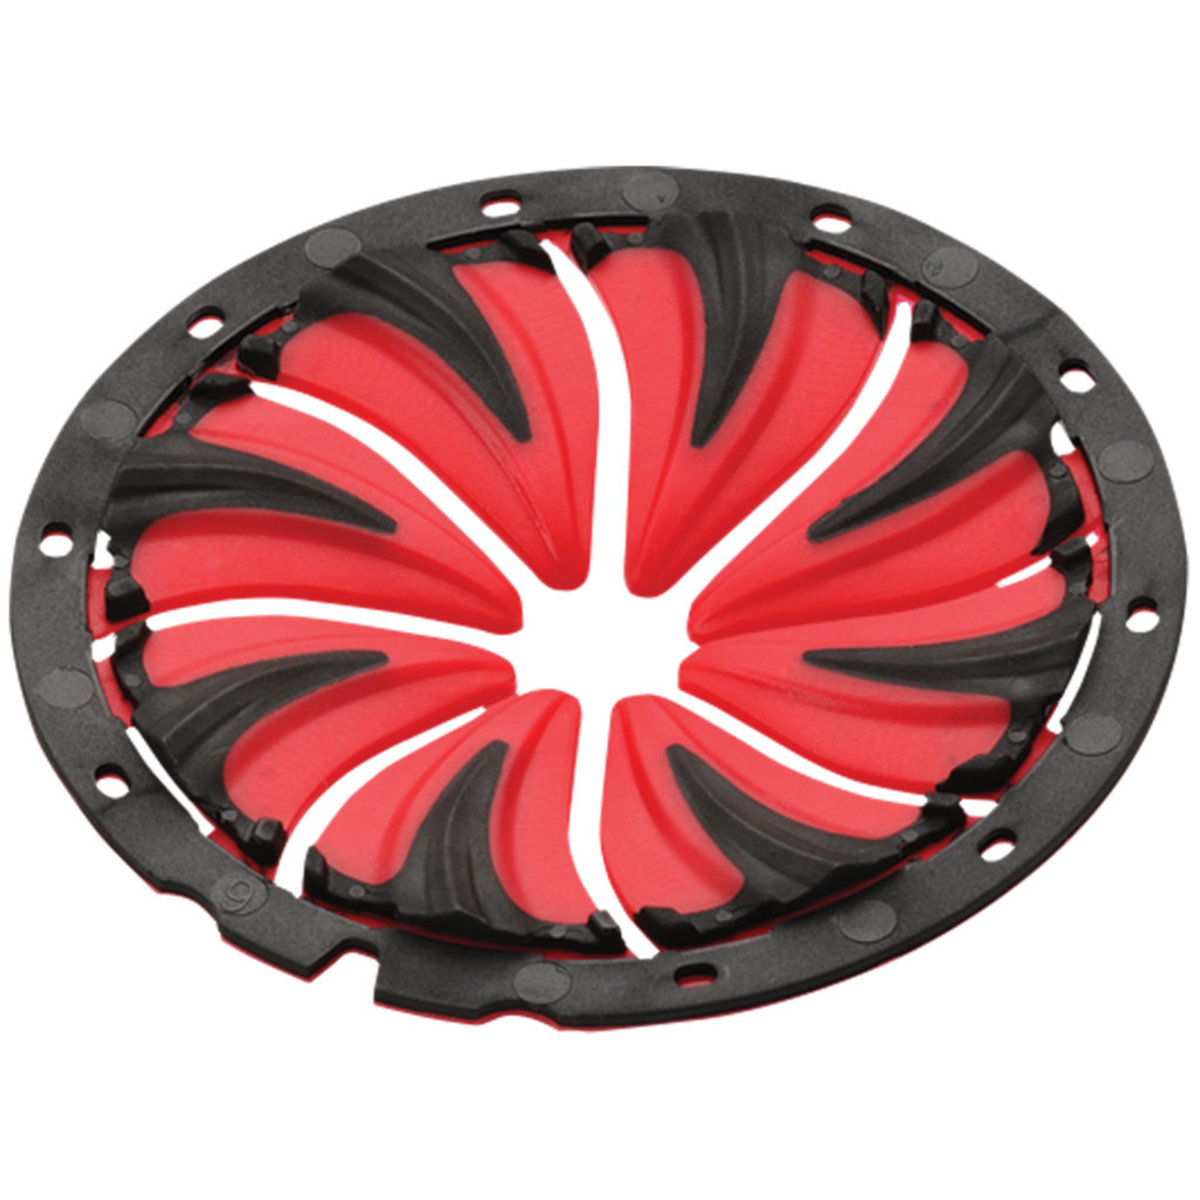 View larger image of Dye Rotor QuickFeed Paintball Loader Accessory